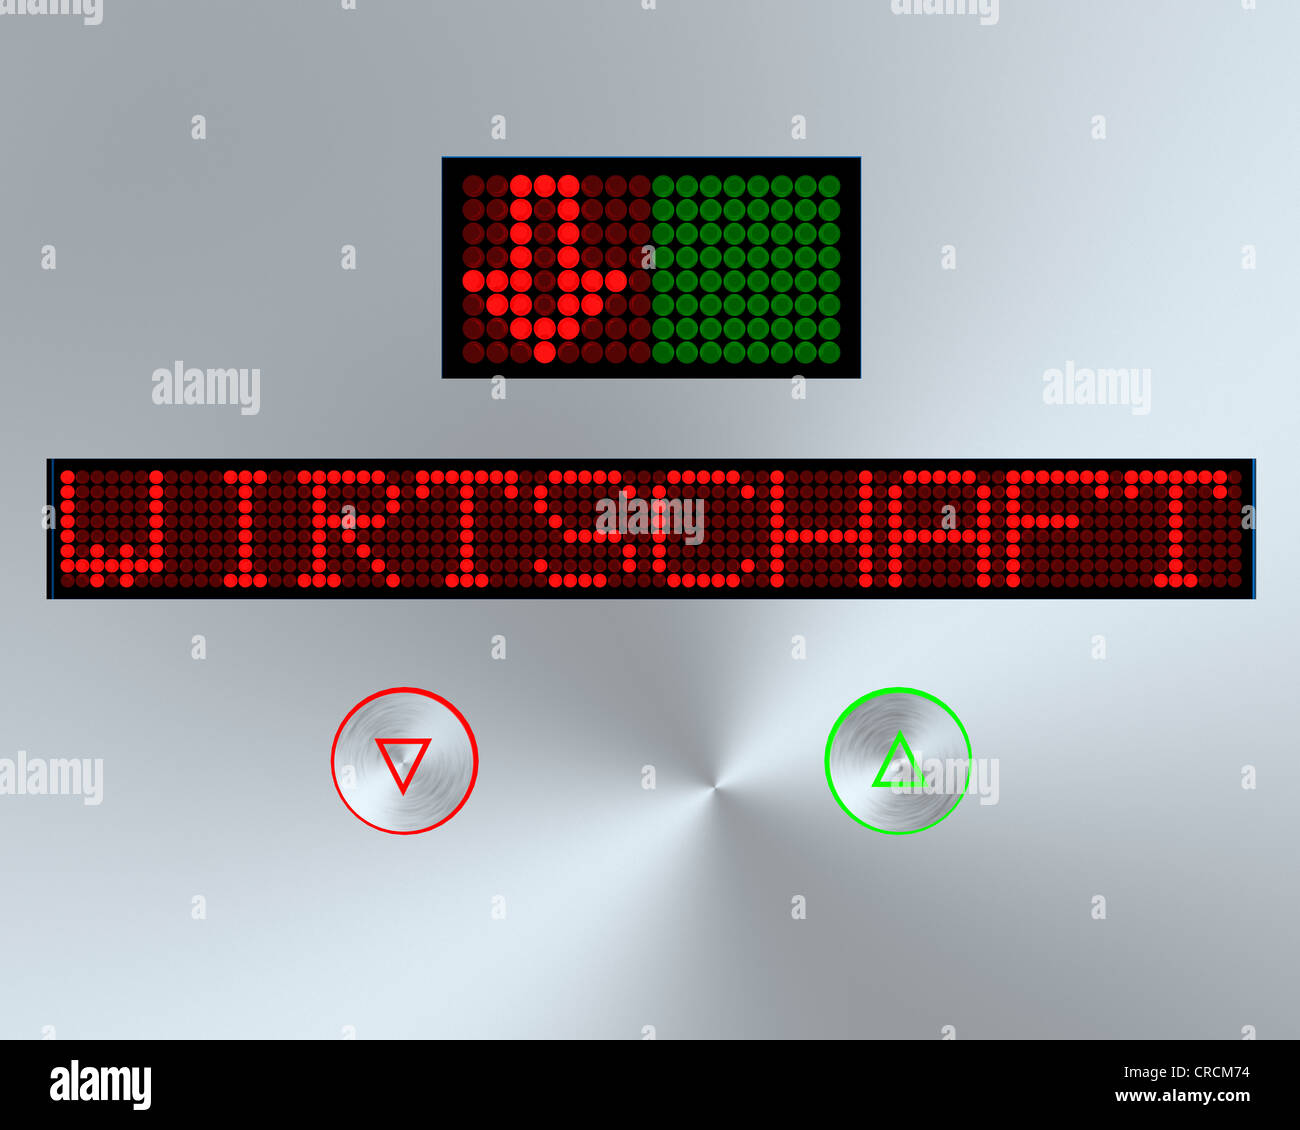 Display with writing 'Wirtschaft' or economy, illustration - Stock Image